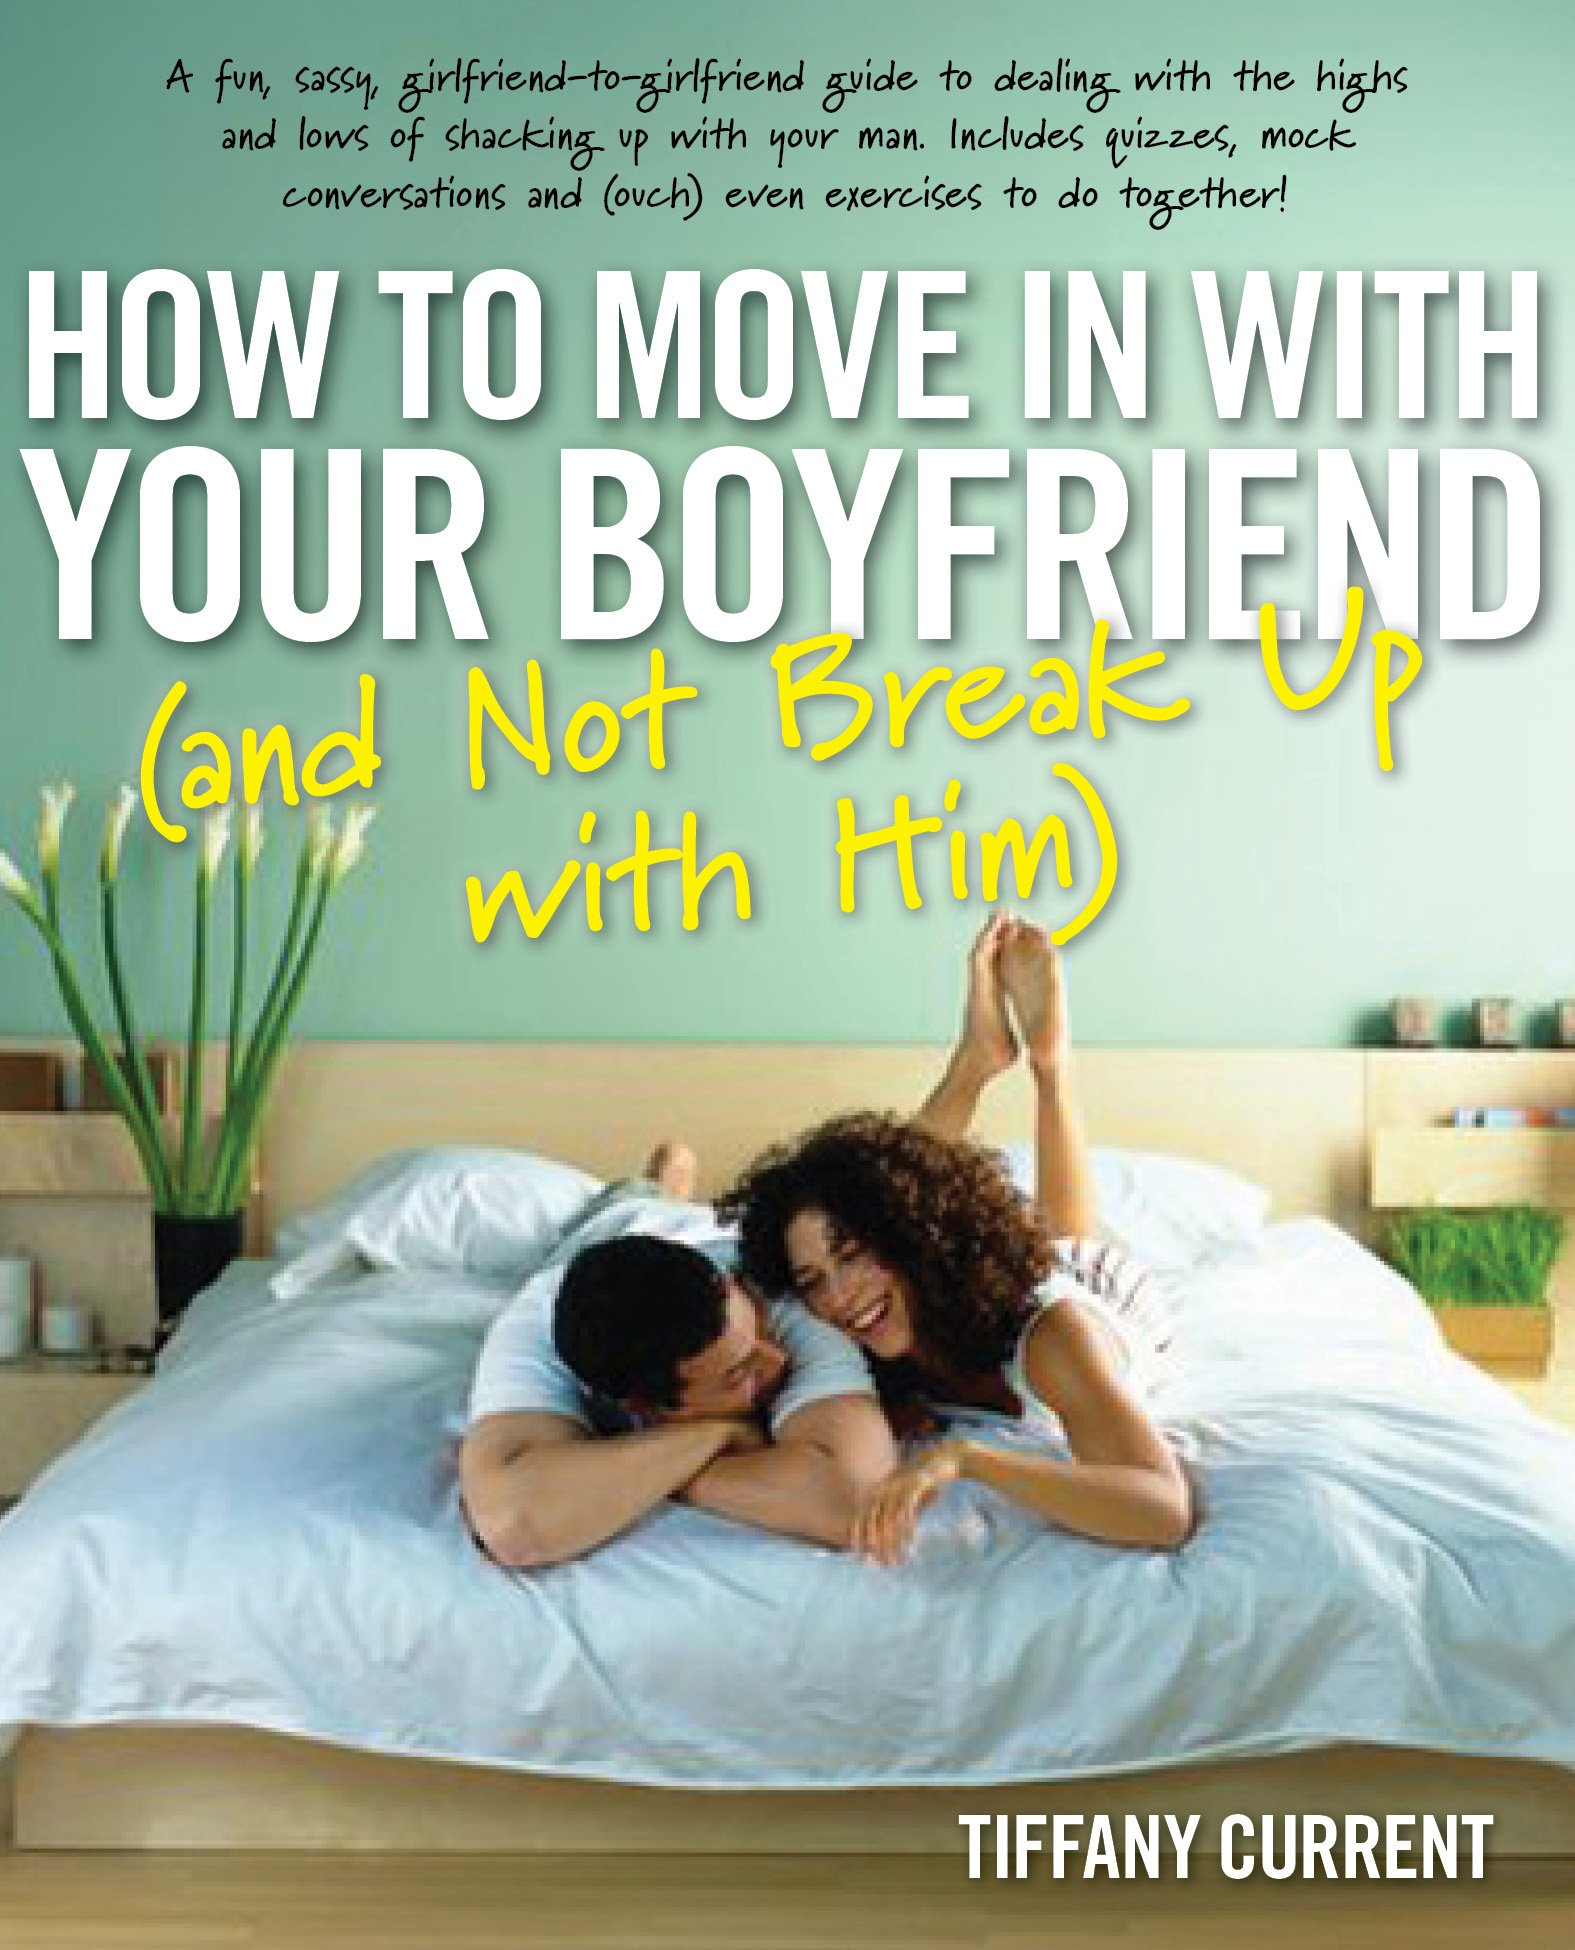 How to Move in with Your Boyfriend and Not Break up with Him